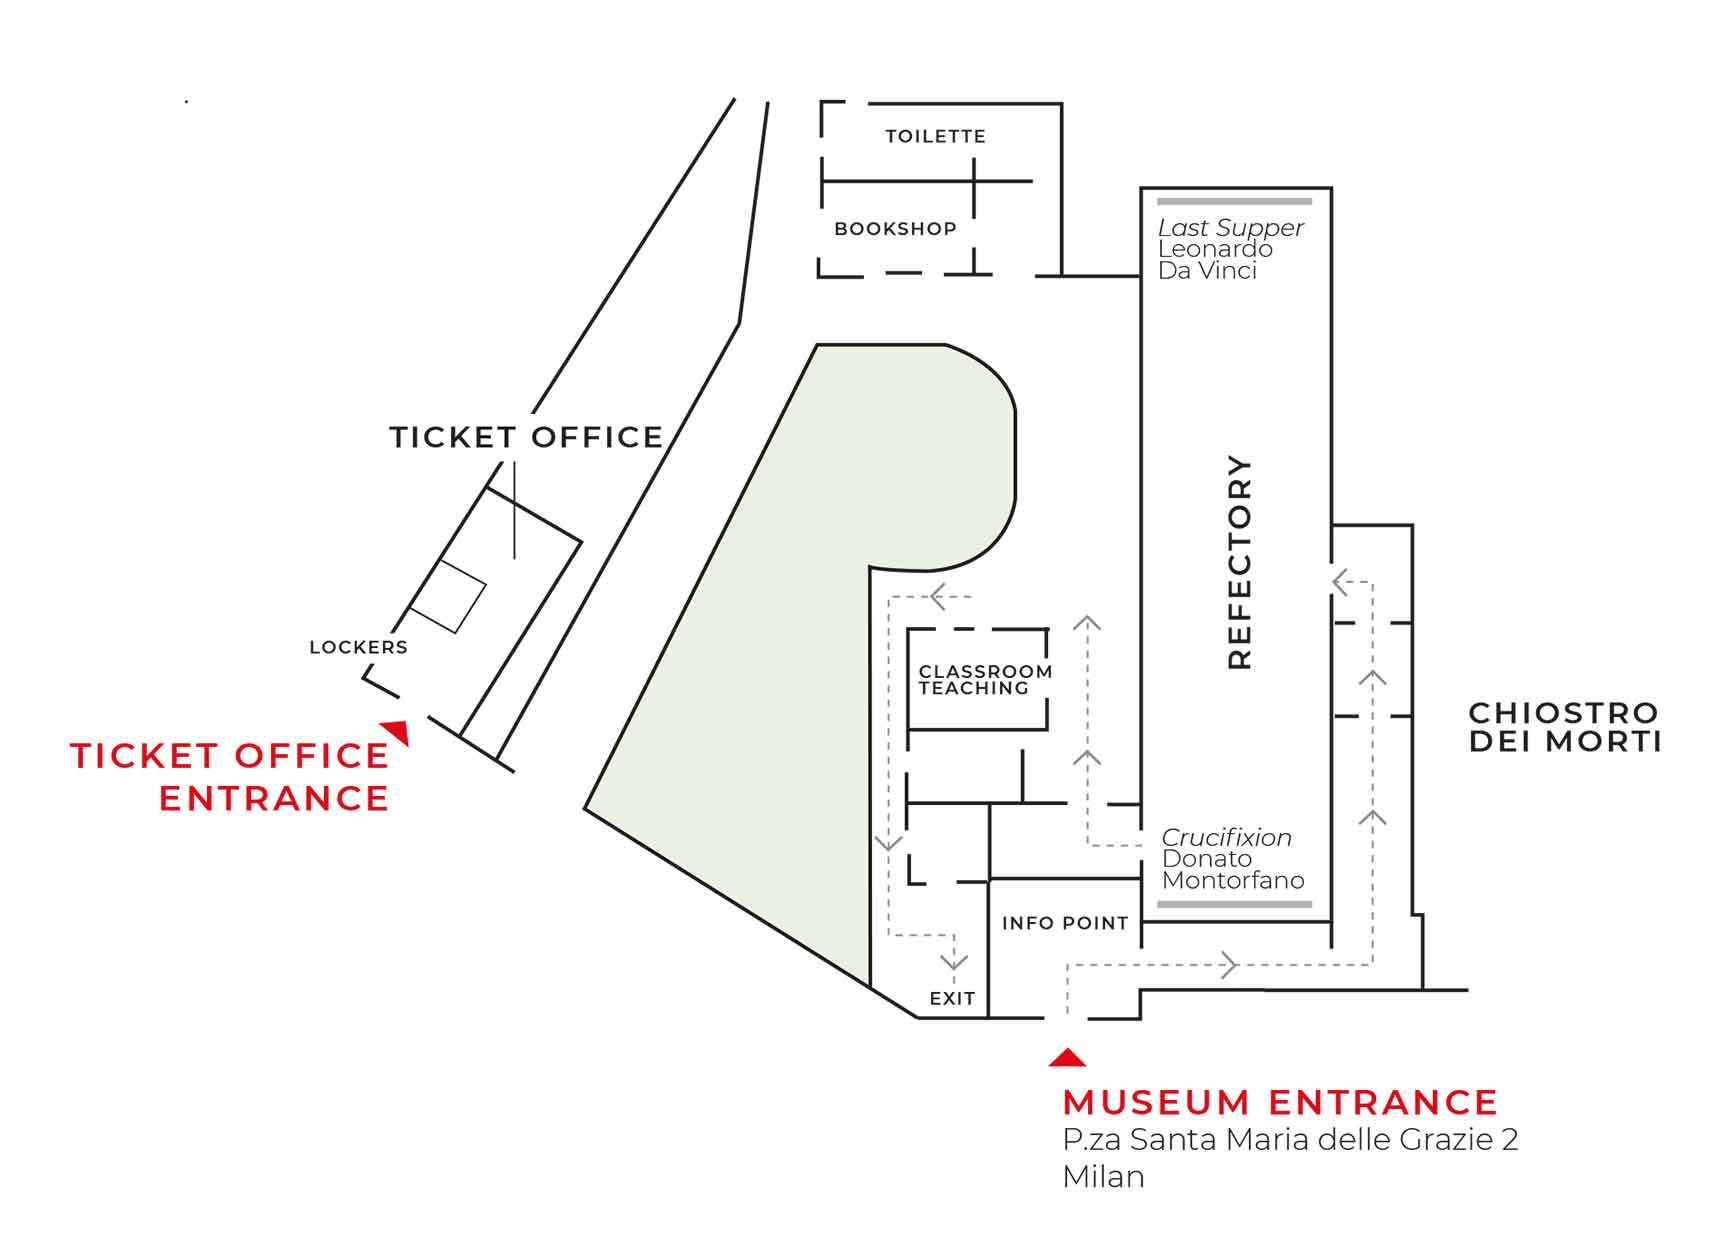 THE MAP OF THE CENACOLO VINCIANO MUSEUM